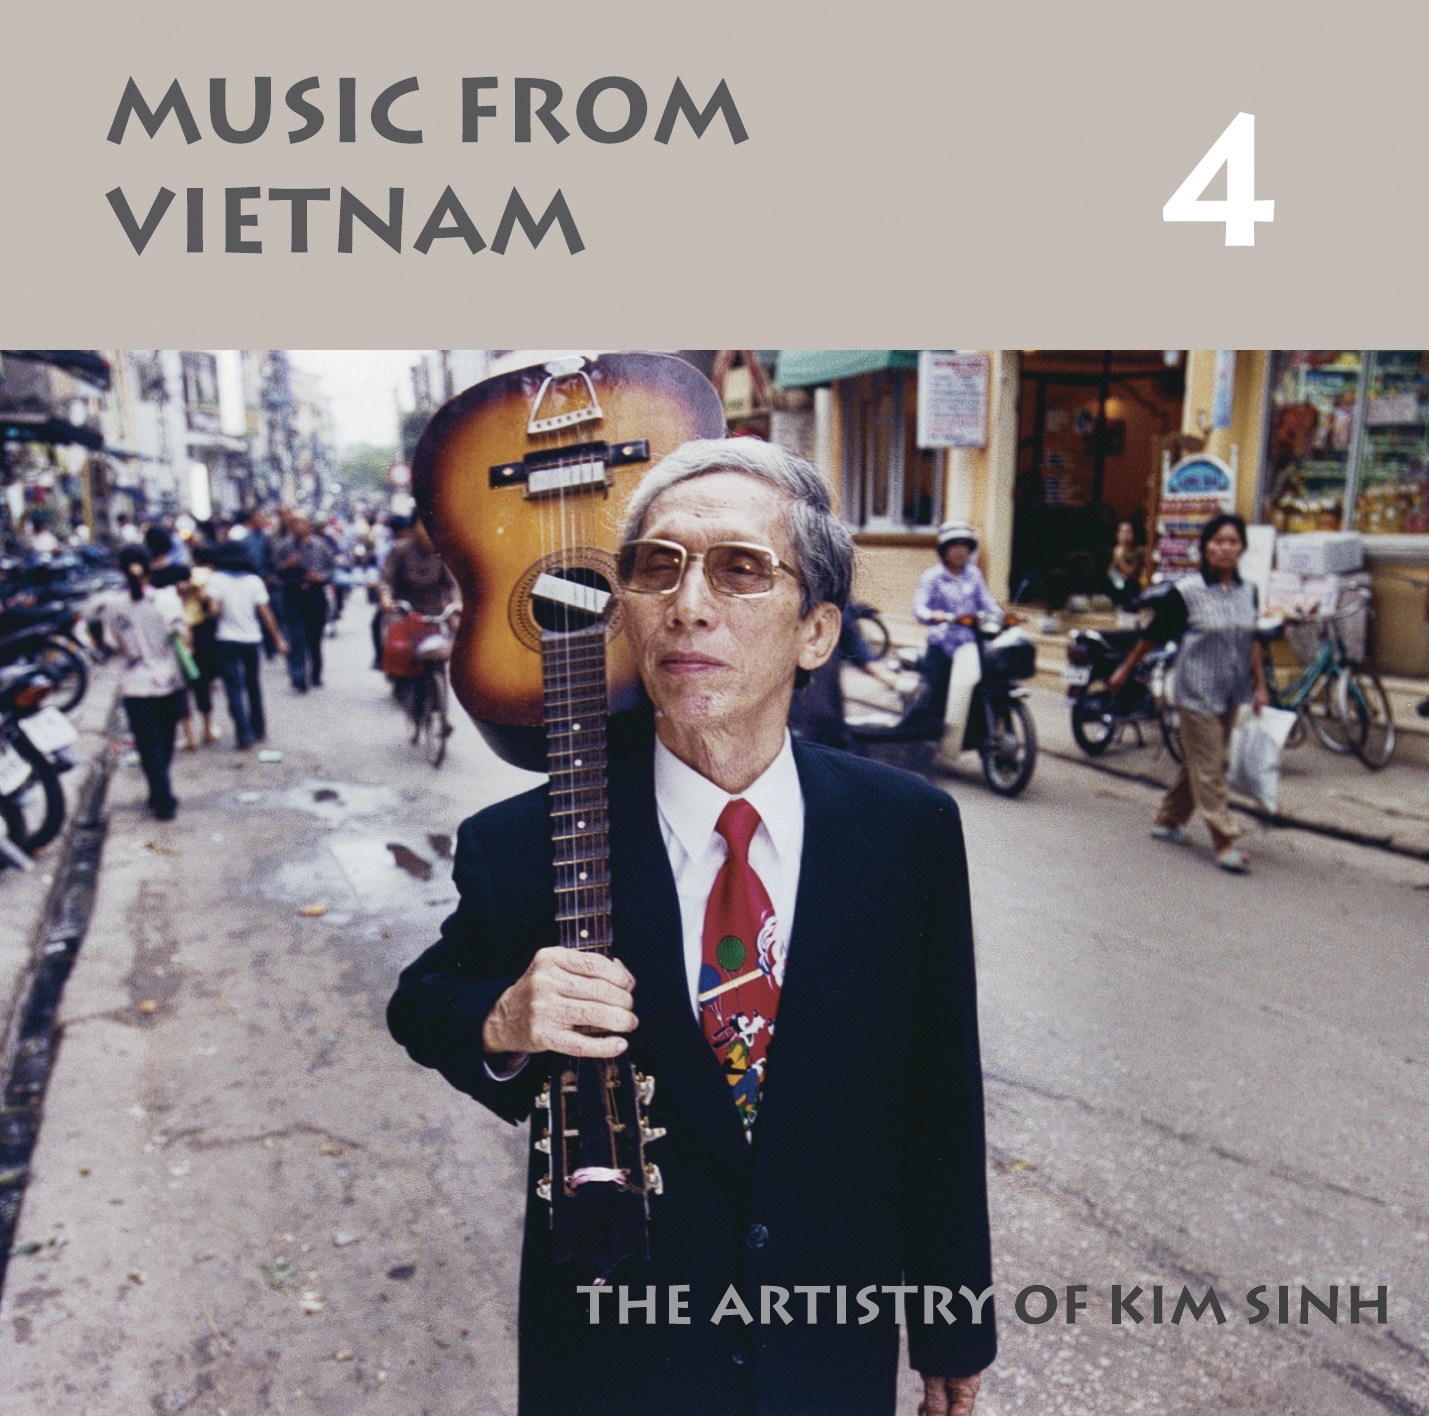 Music from Vietnam 4: The Artistry of Kim Sinh